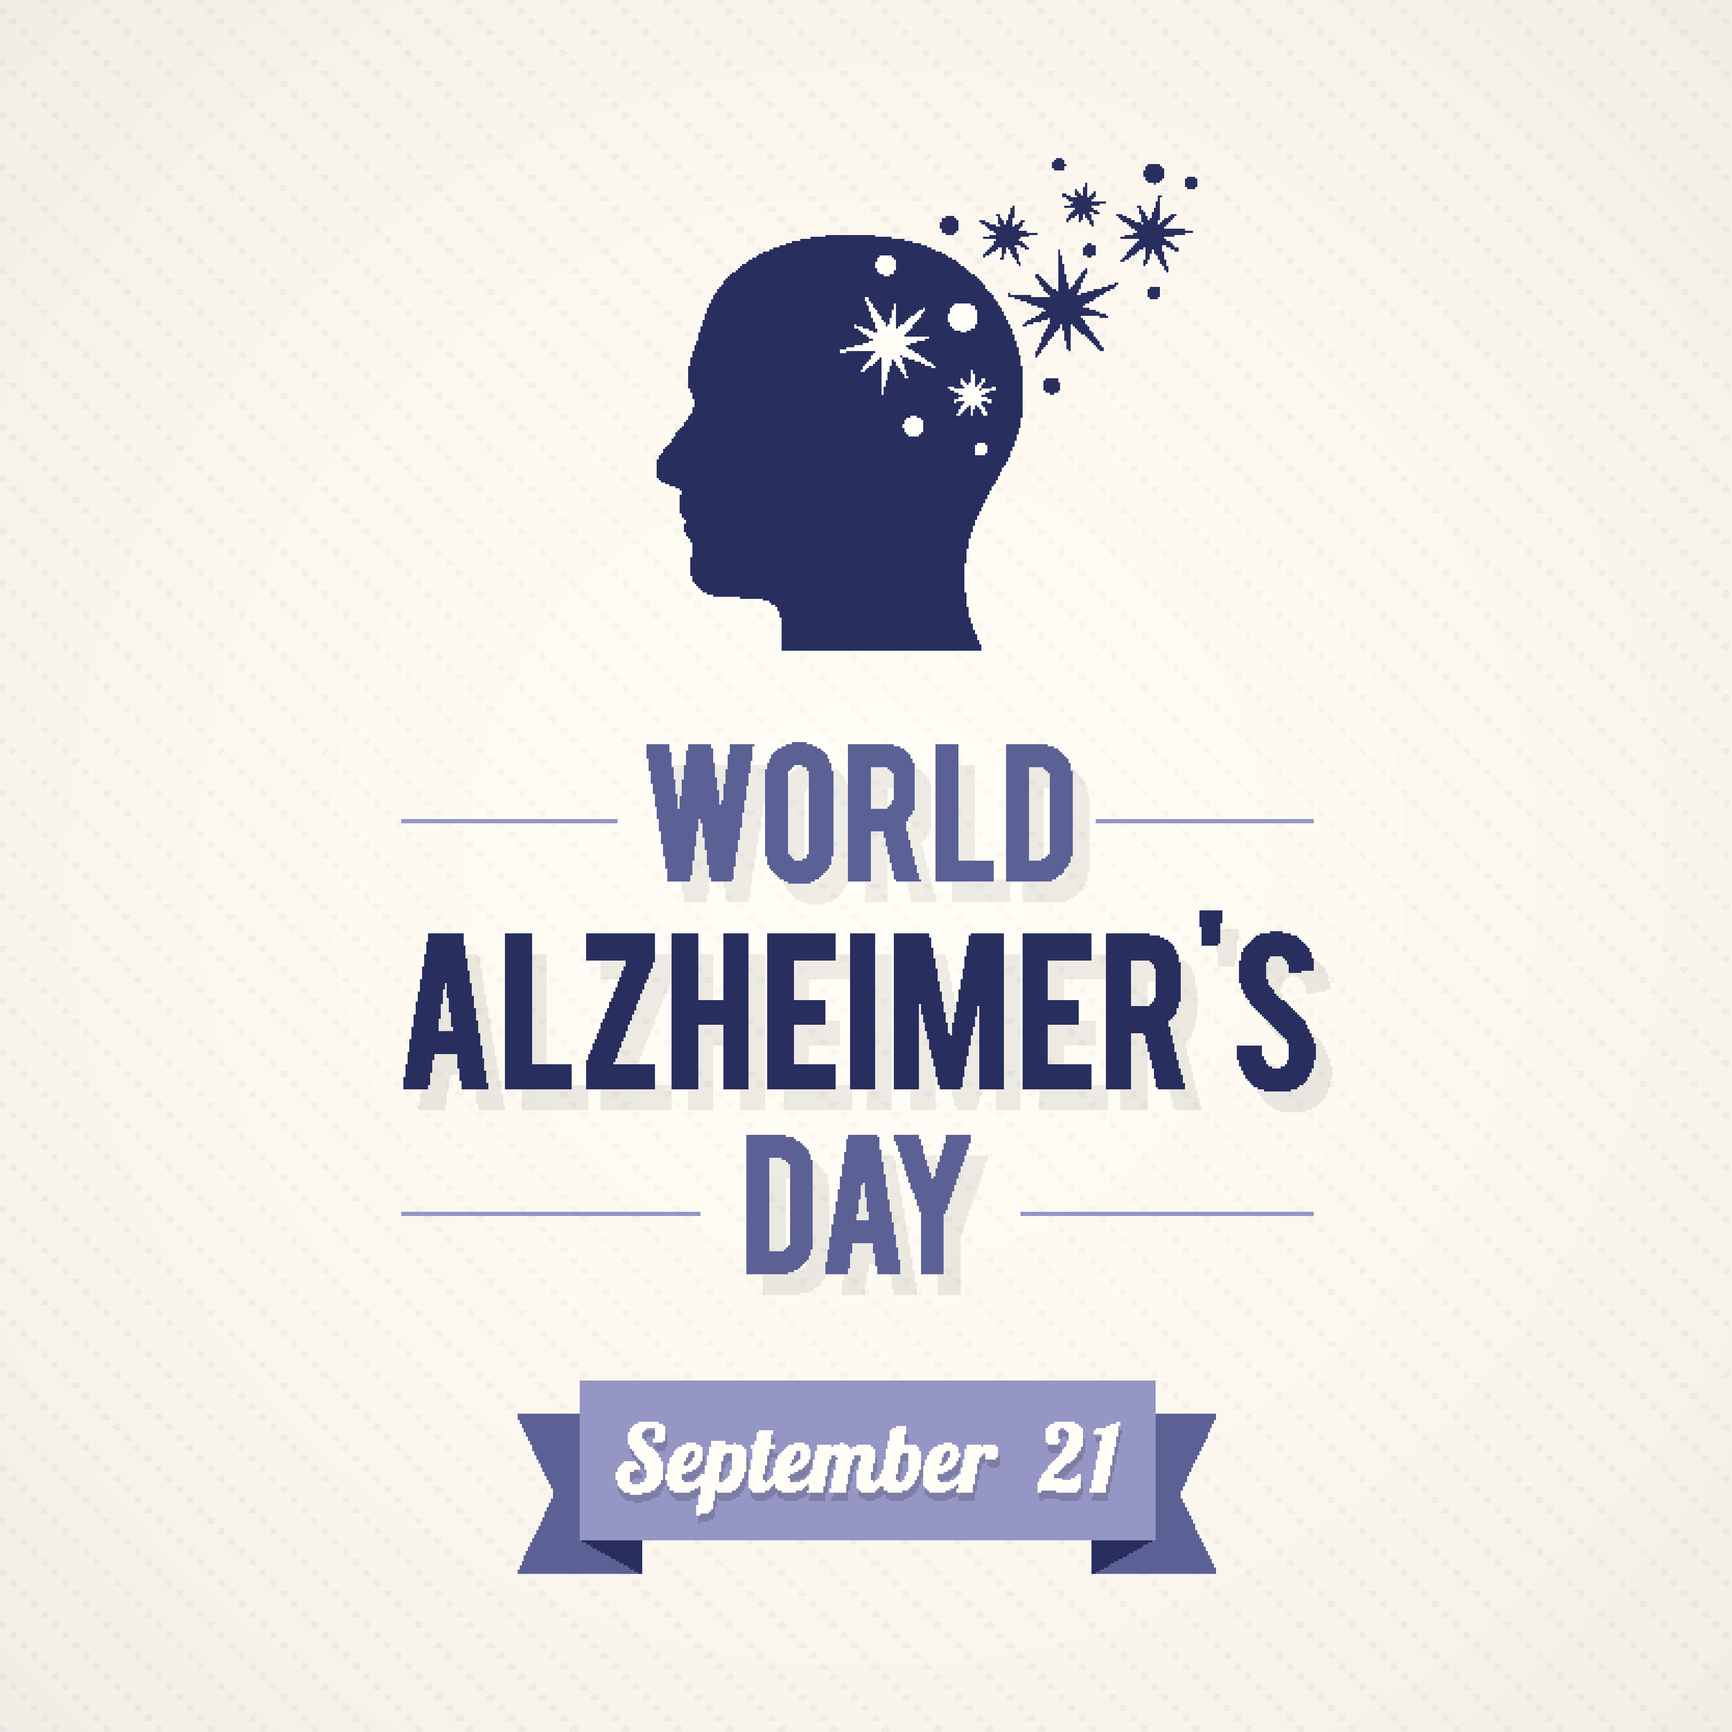 Cuba joins the campaign for World Alzheimer's Day